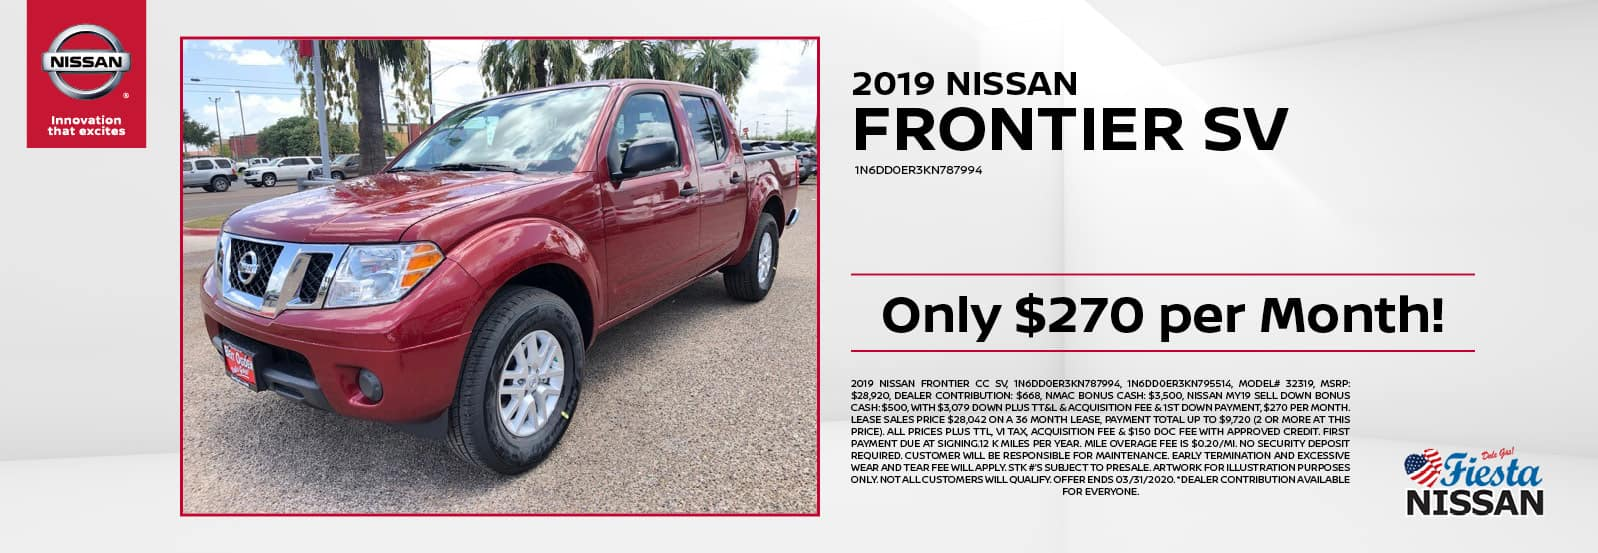 2019 Nissan Frontier SV at Fiesta Nissan in Edinburg, TX